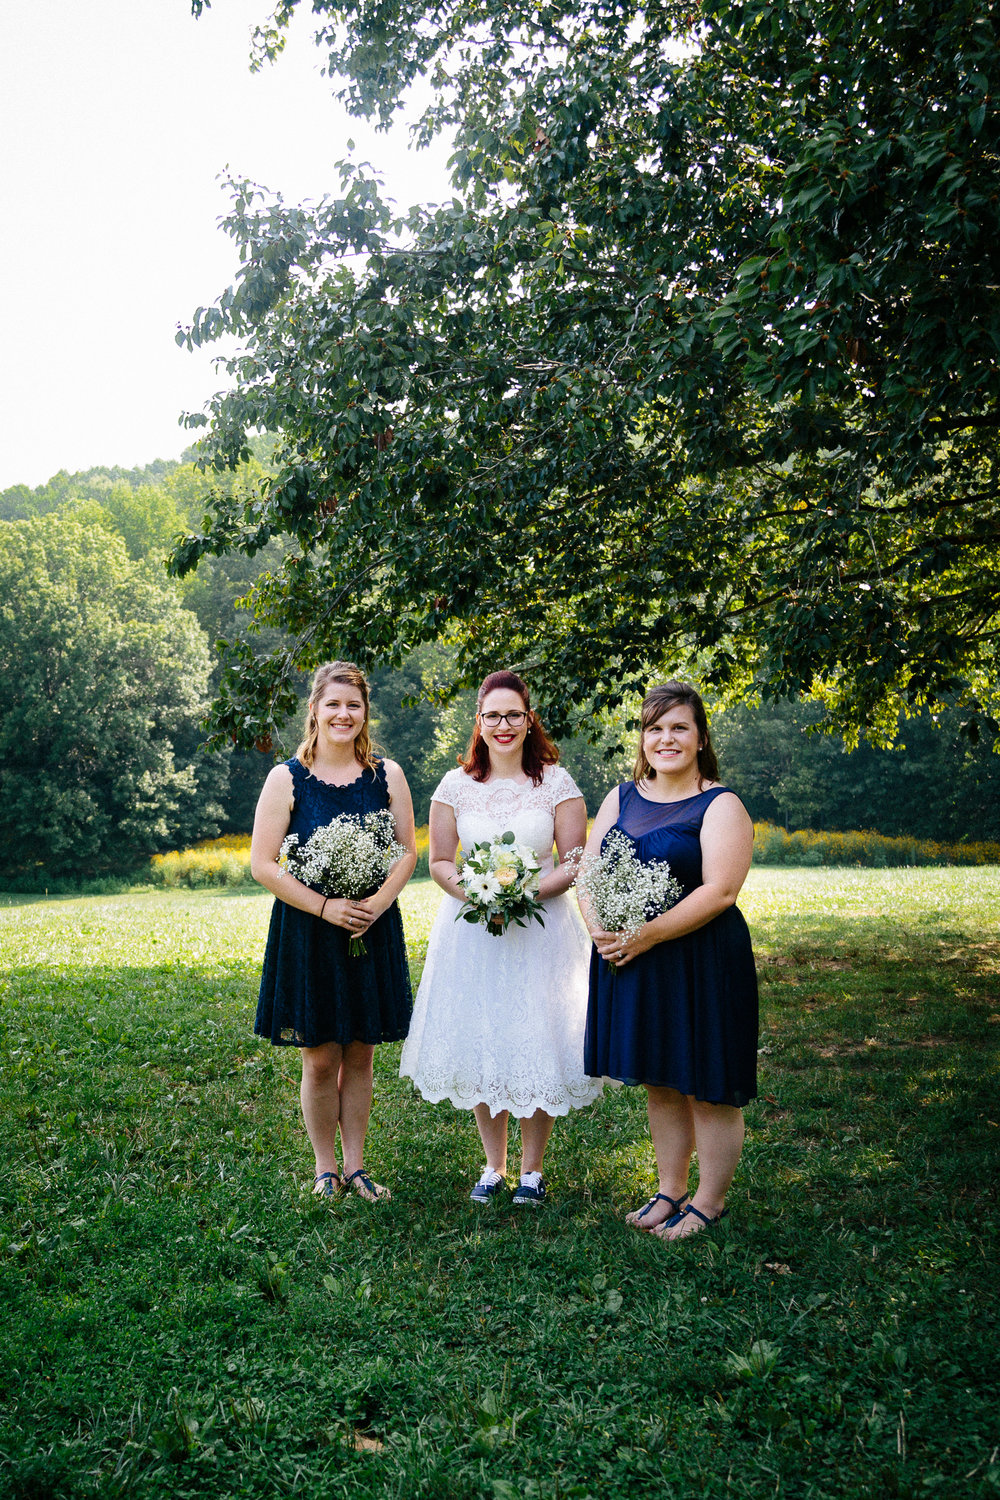 Cook Wedding | Intimate Wedding Photographer | Erin Brennan Photography